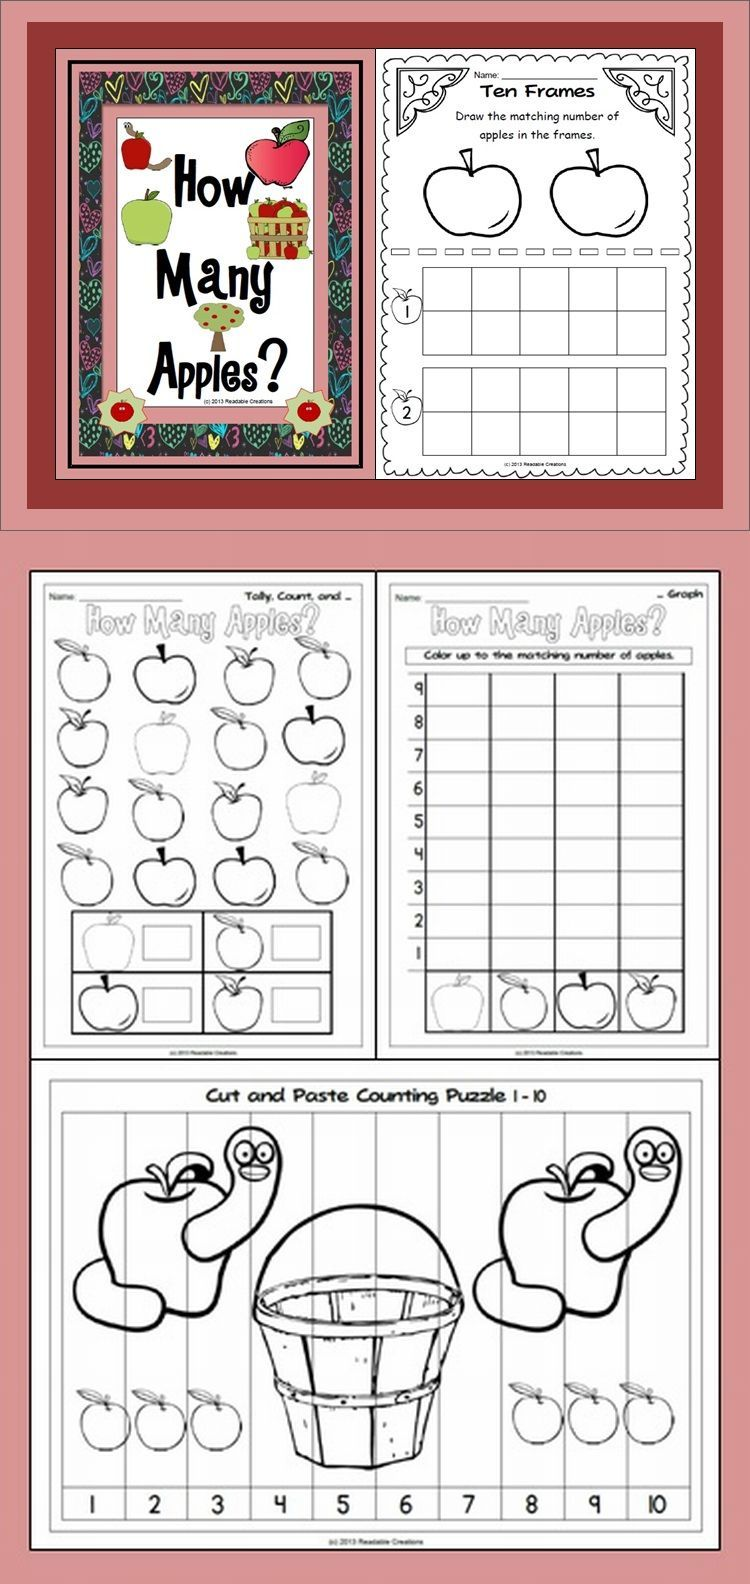 How Many Apples Math Counting Activities Math Counting